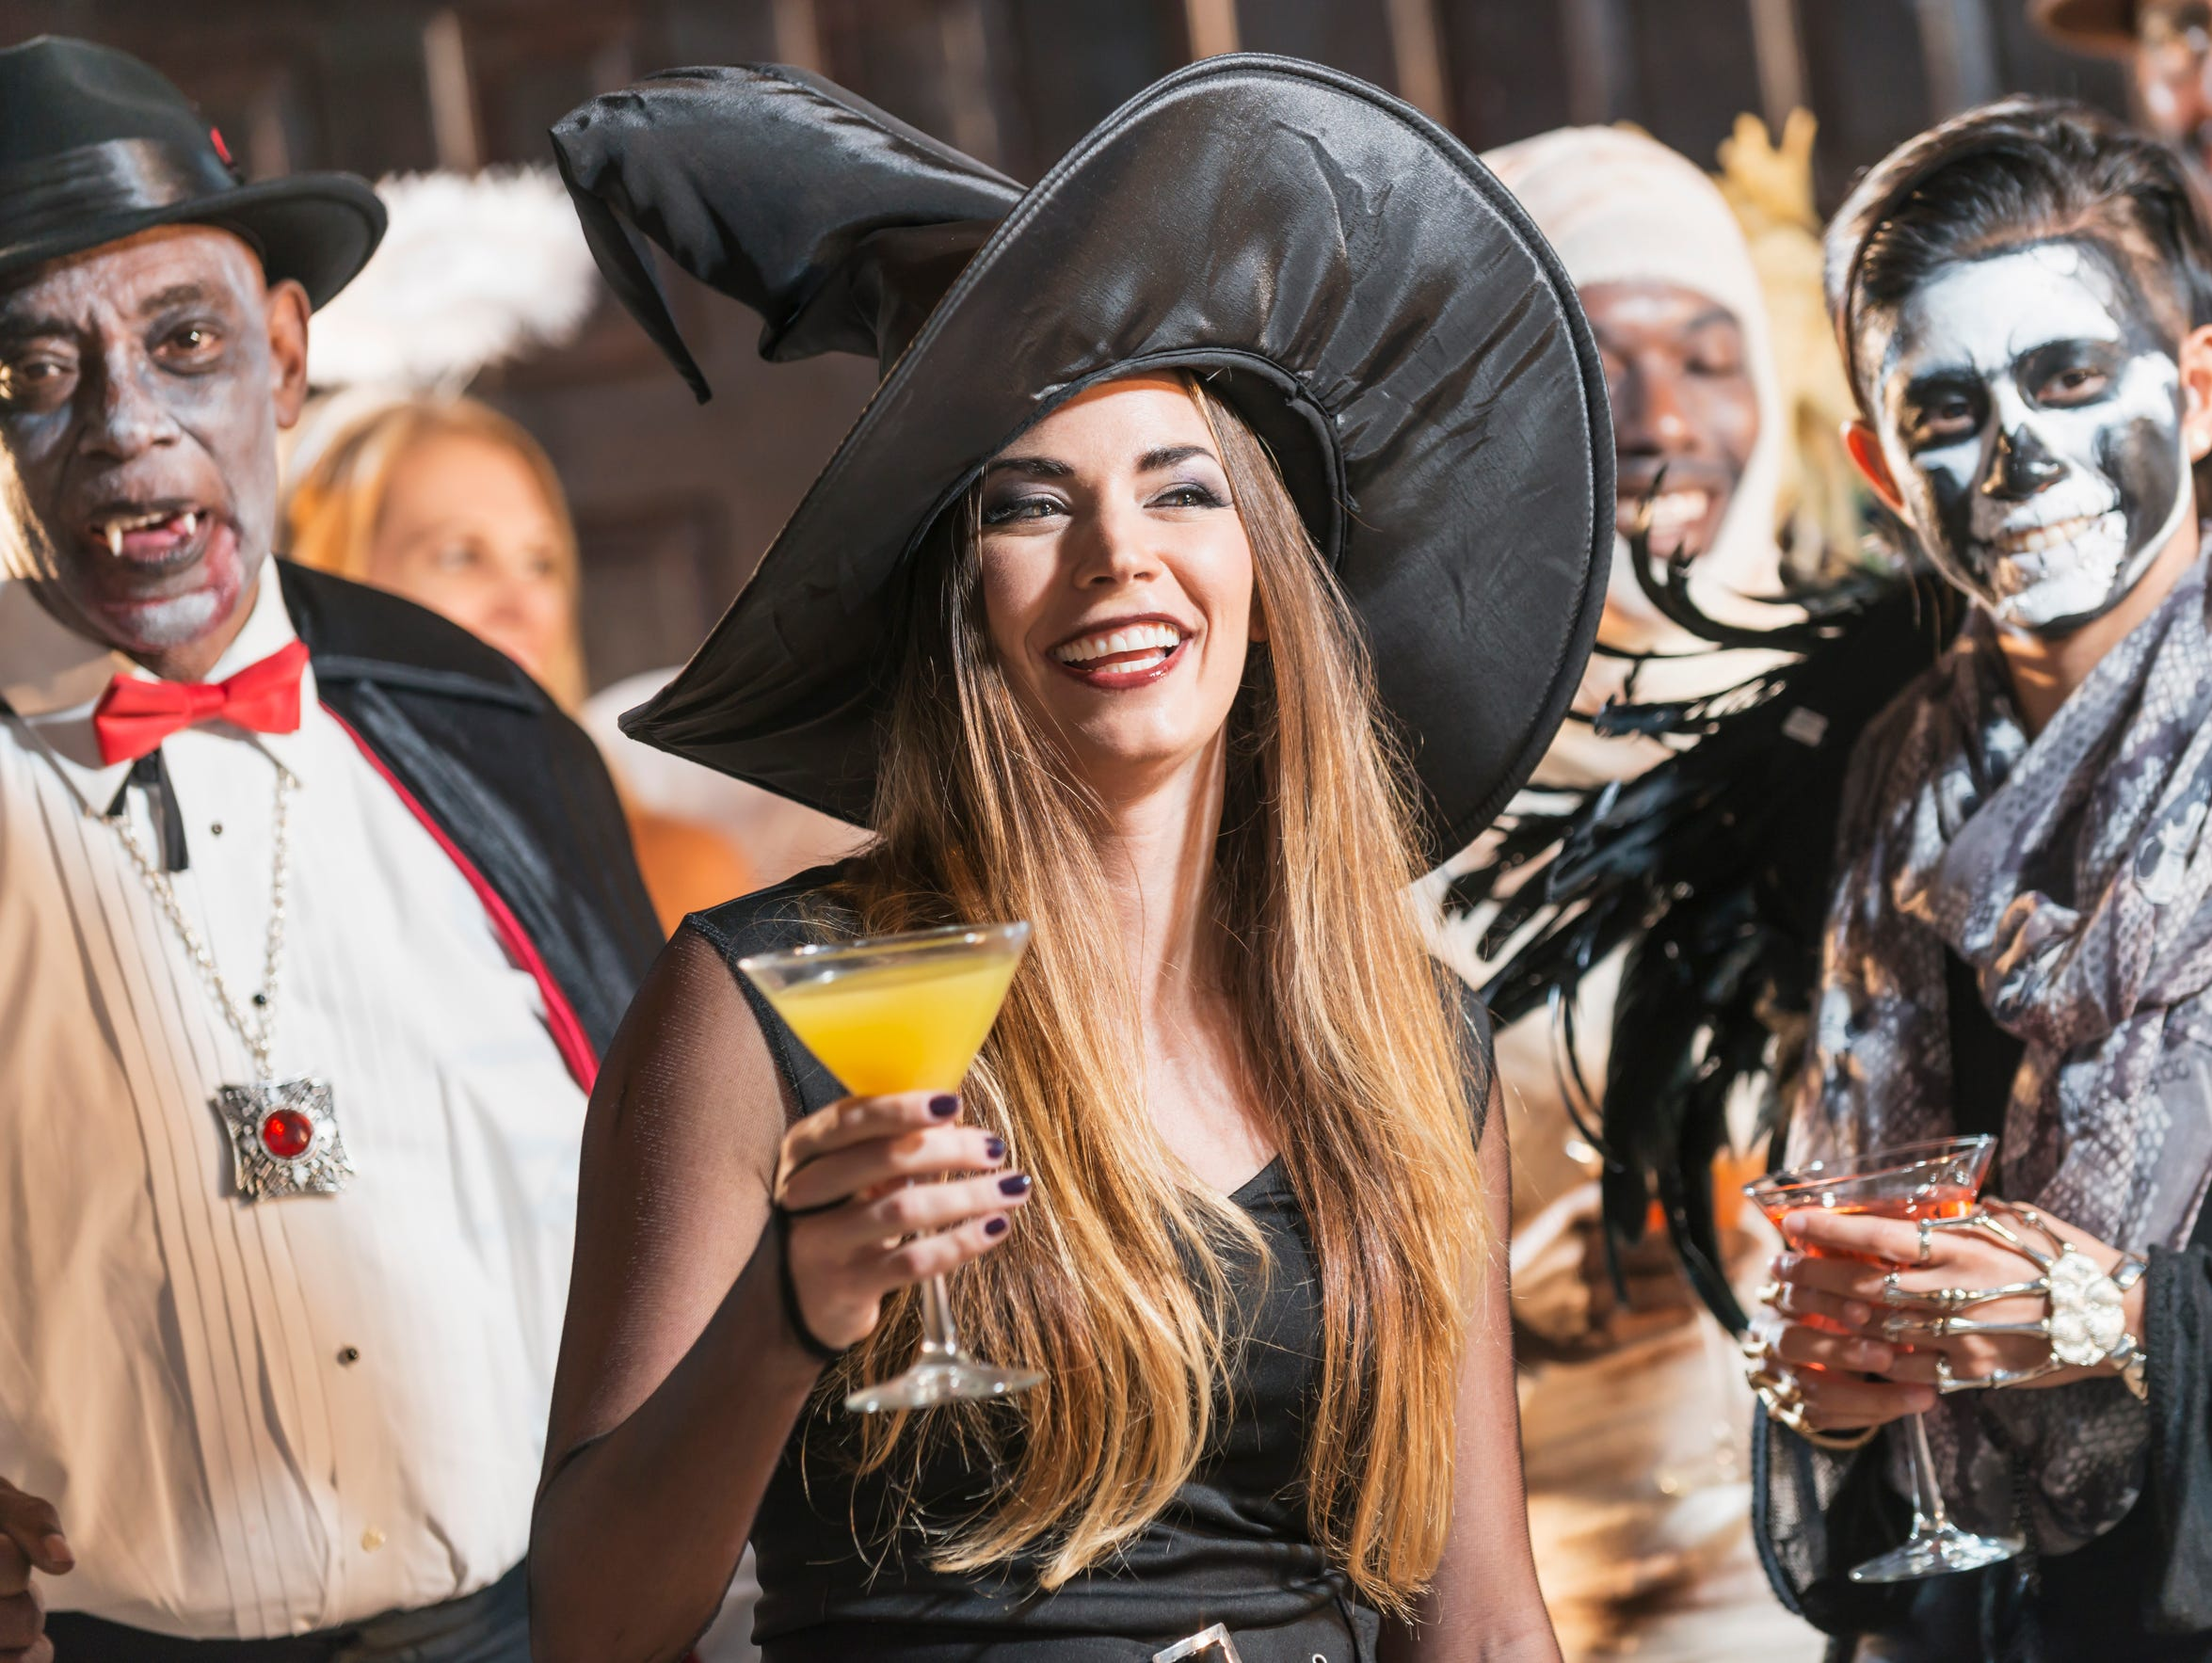 The Game II, Extra Innings, 4131 Northrise Drive,will host a Booze & Boos Costume Party from 7 p.m. to midnightFriday, Oct. 27.